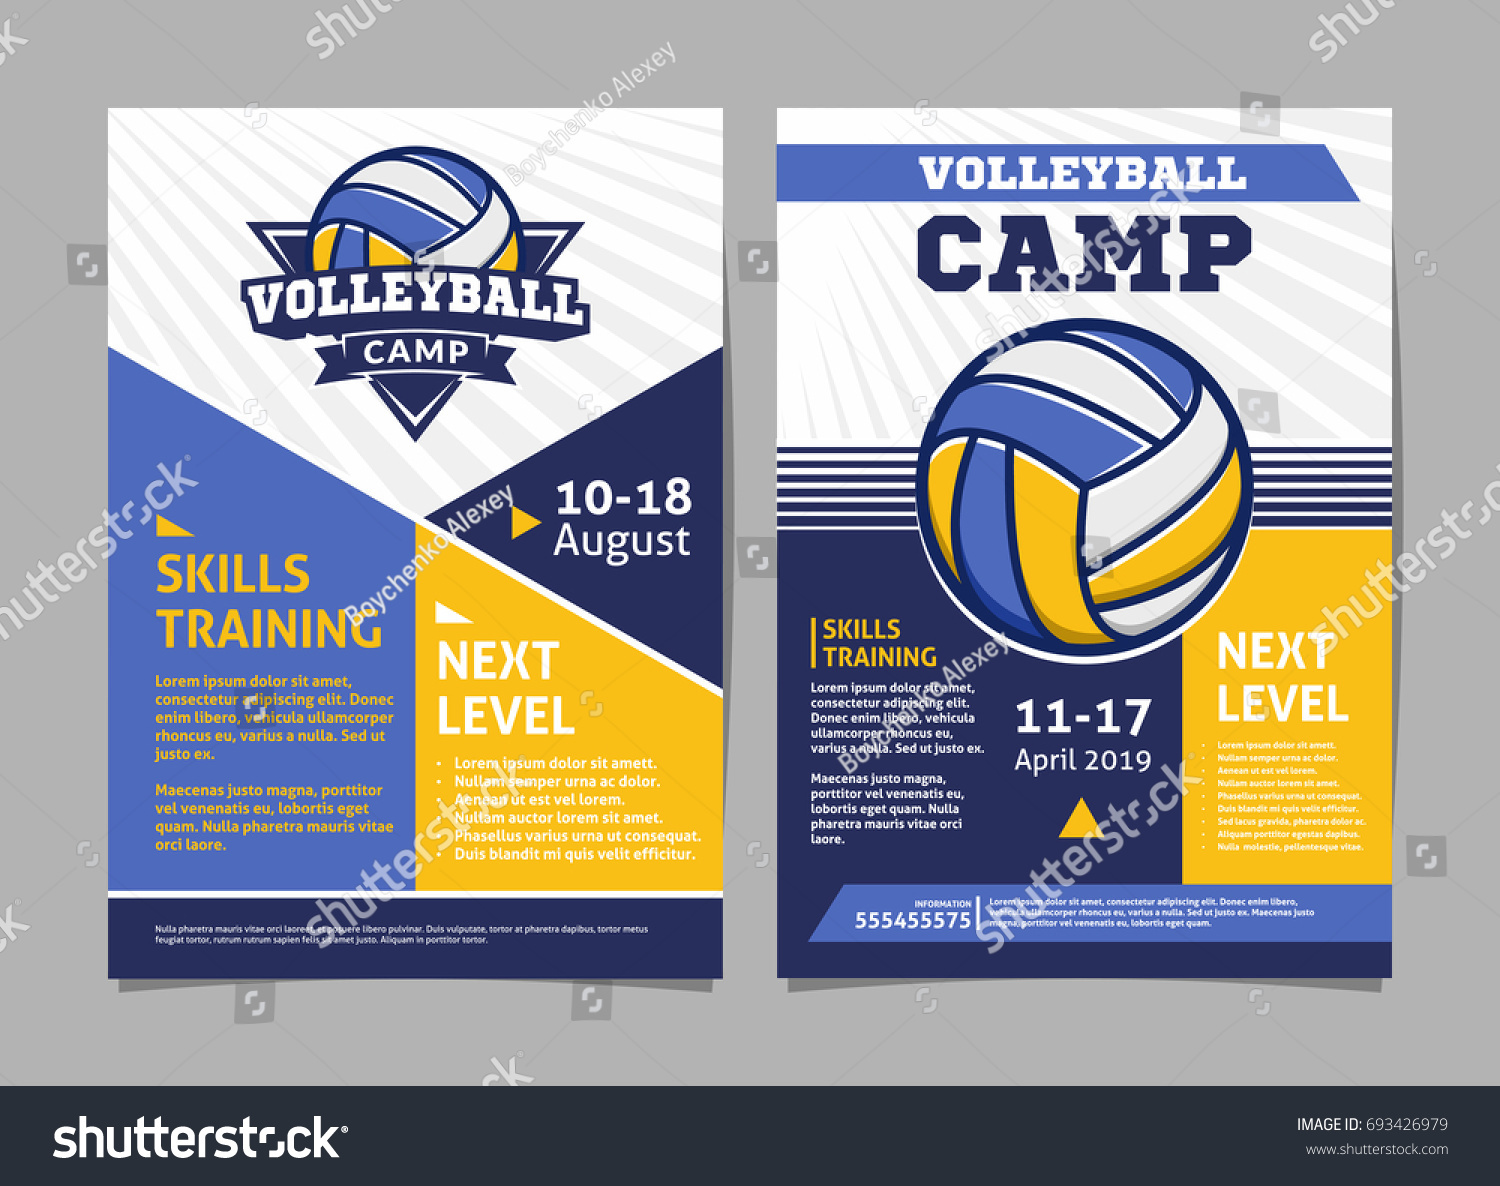 Volleyball camp flyer template design.